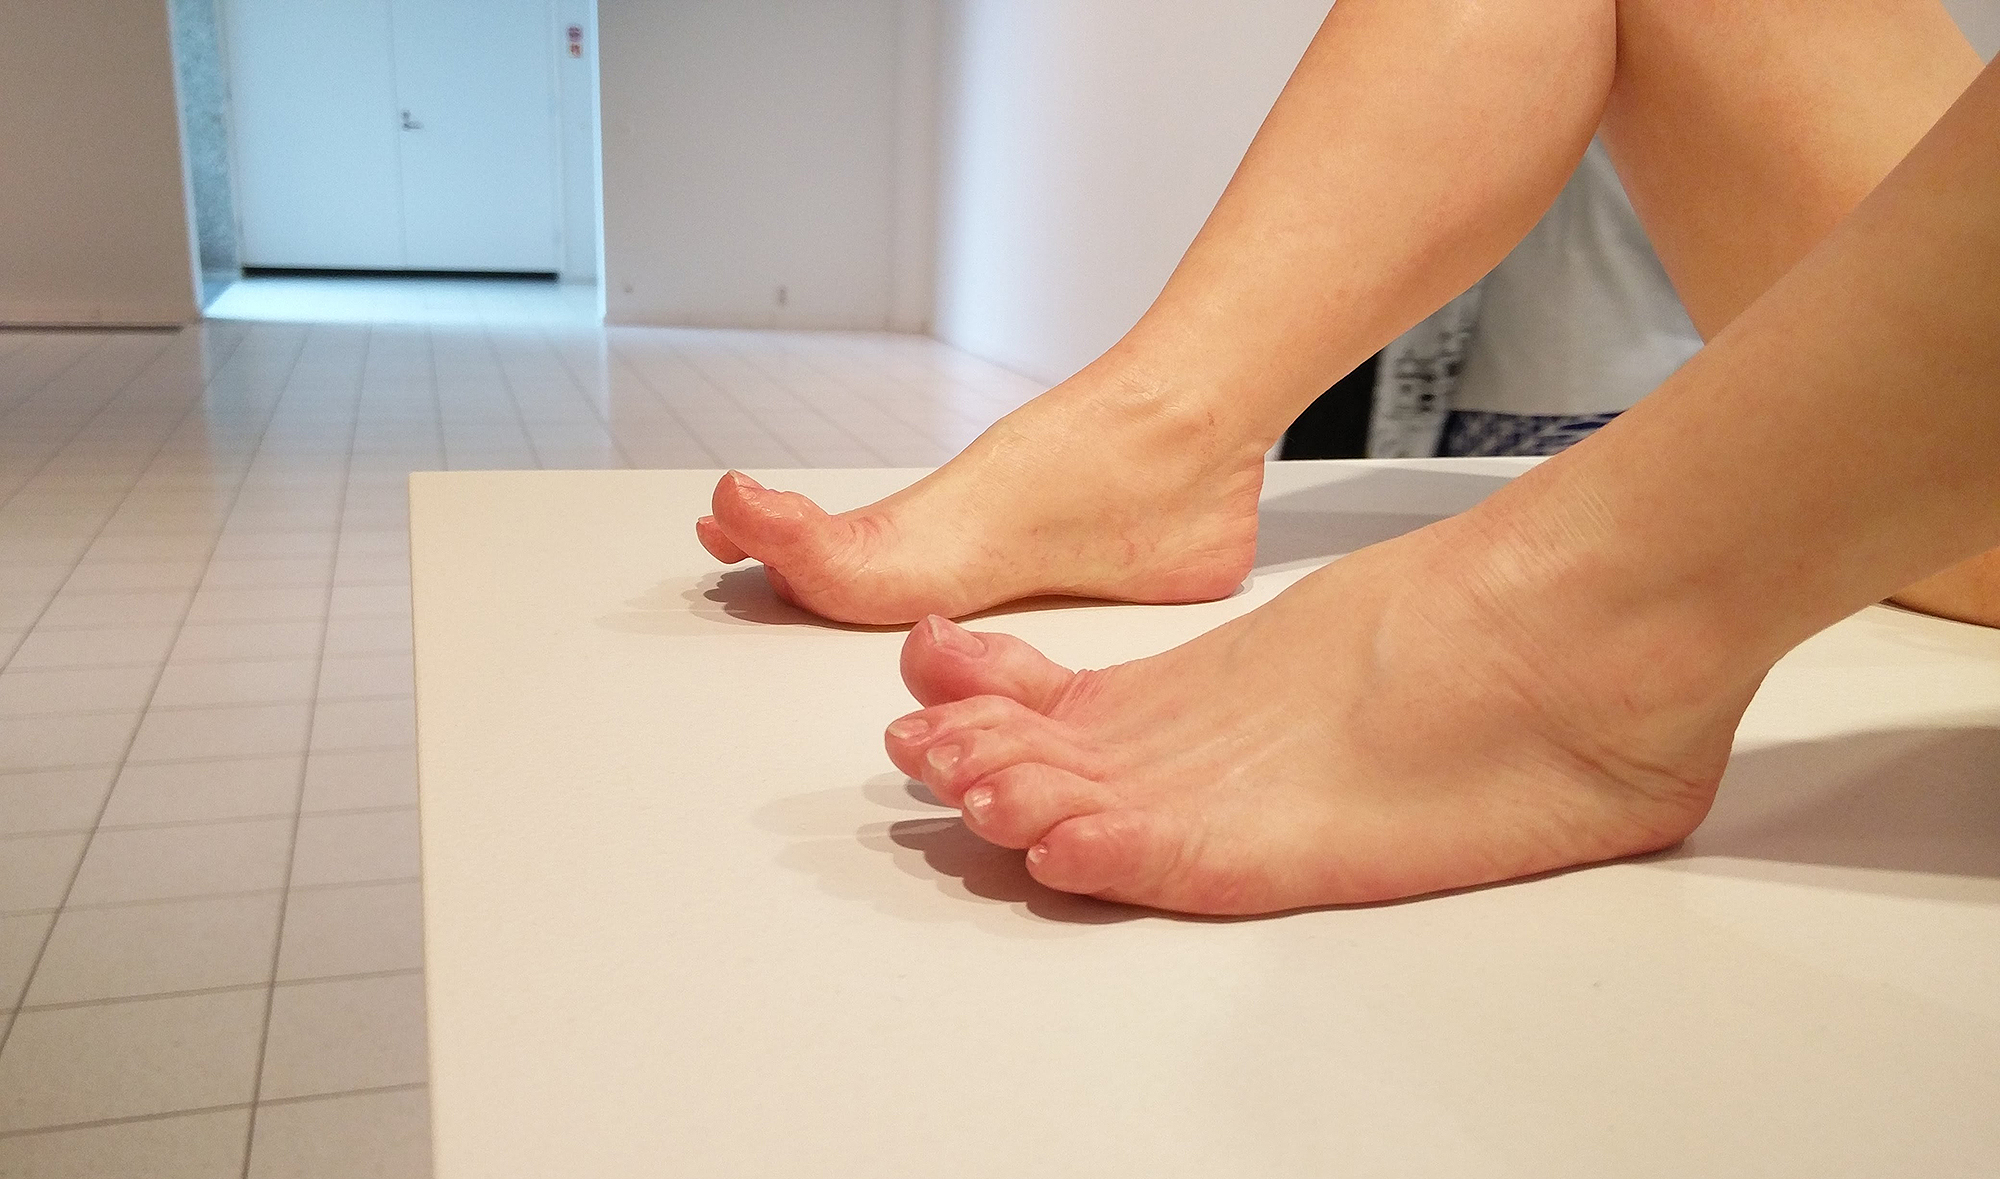 ron_mueck_sara_hilden_taide_tampere_2